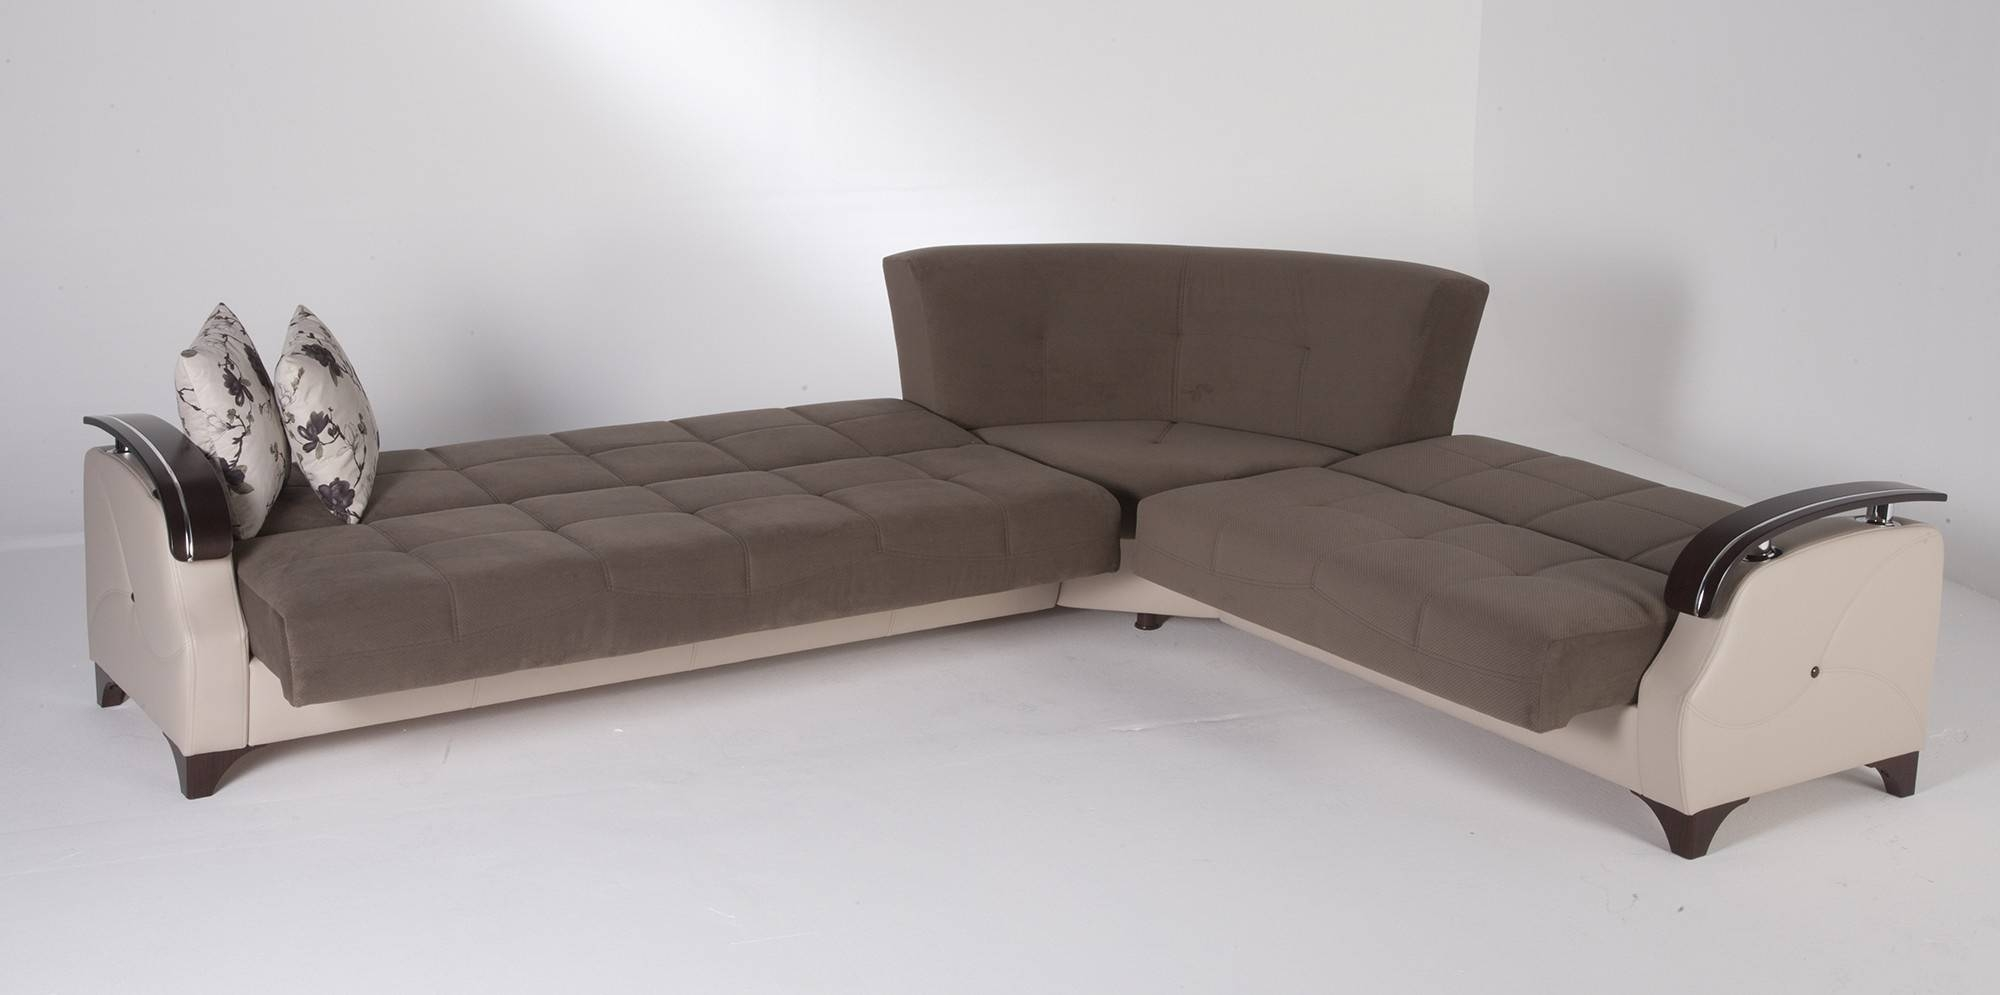 Jcpenney Reclining Sofas | Tehranmix Decoration Intended For Jcpenney Sectional Sofas (View 15 of 15)